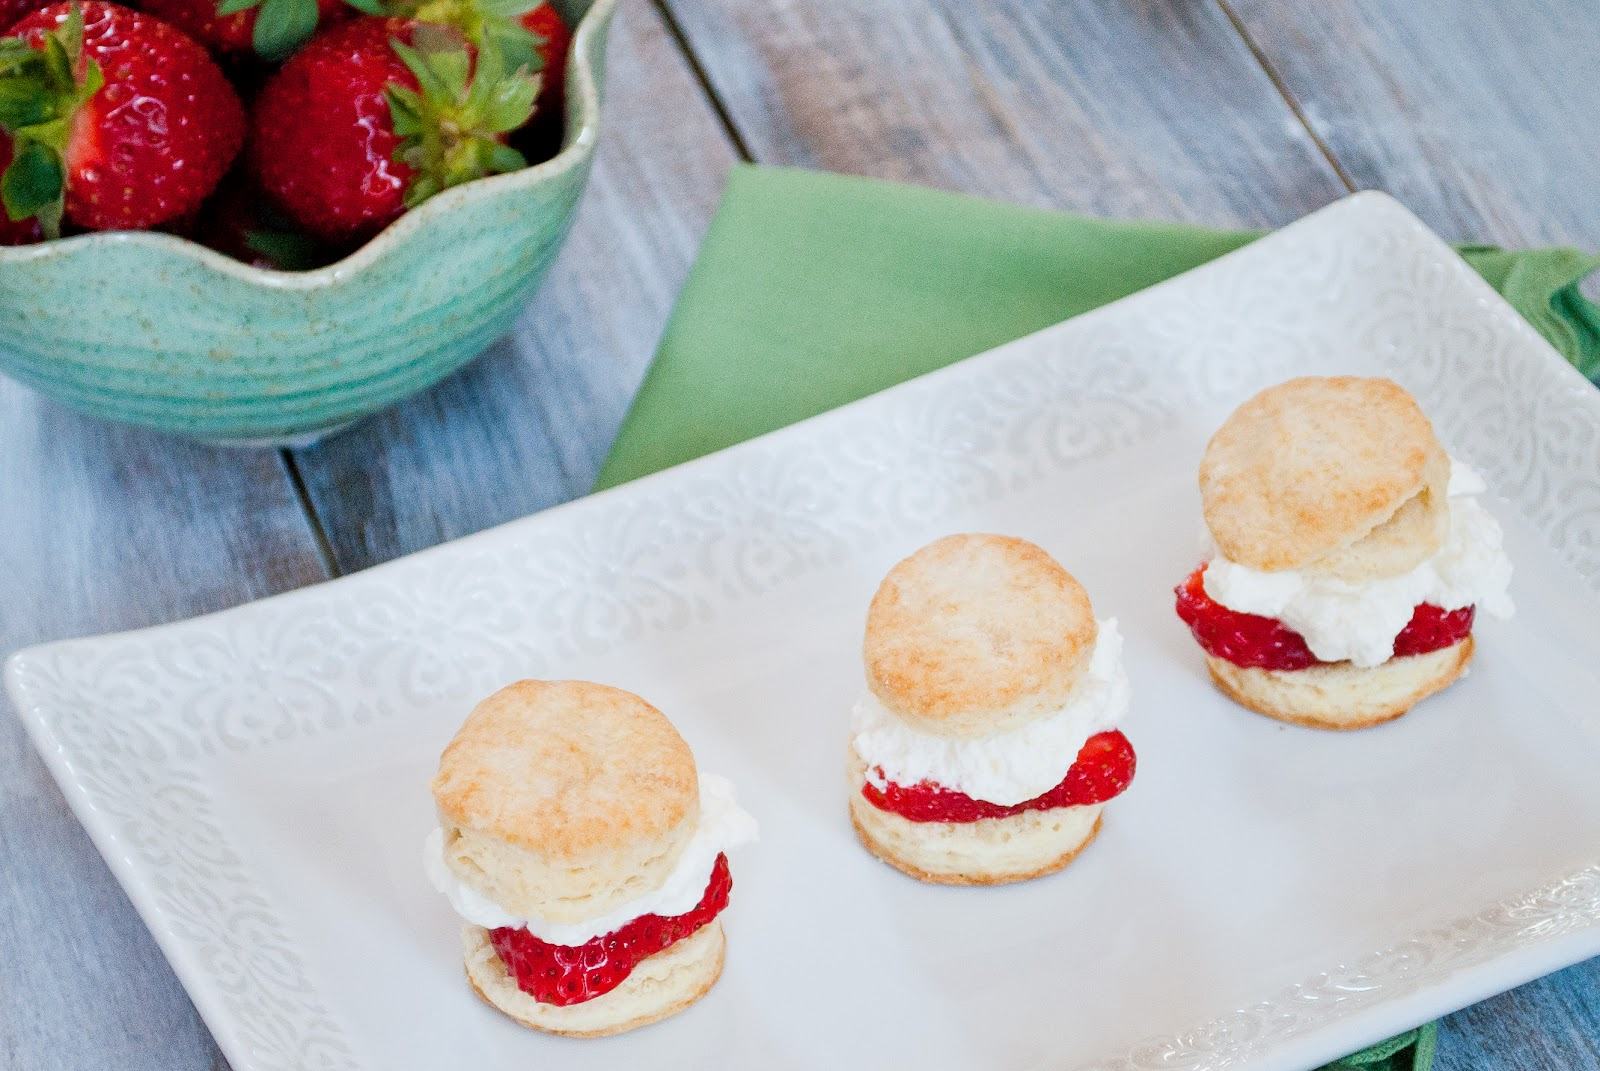 Ryan Bakes: Strawberry Shortcake Sliders for a Virtual Baby Shower